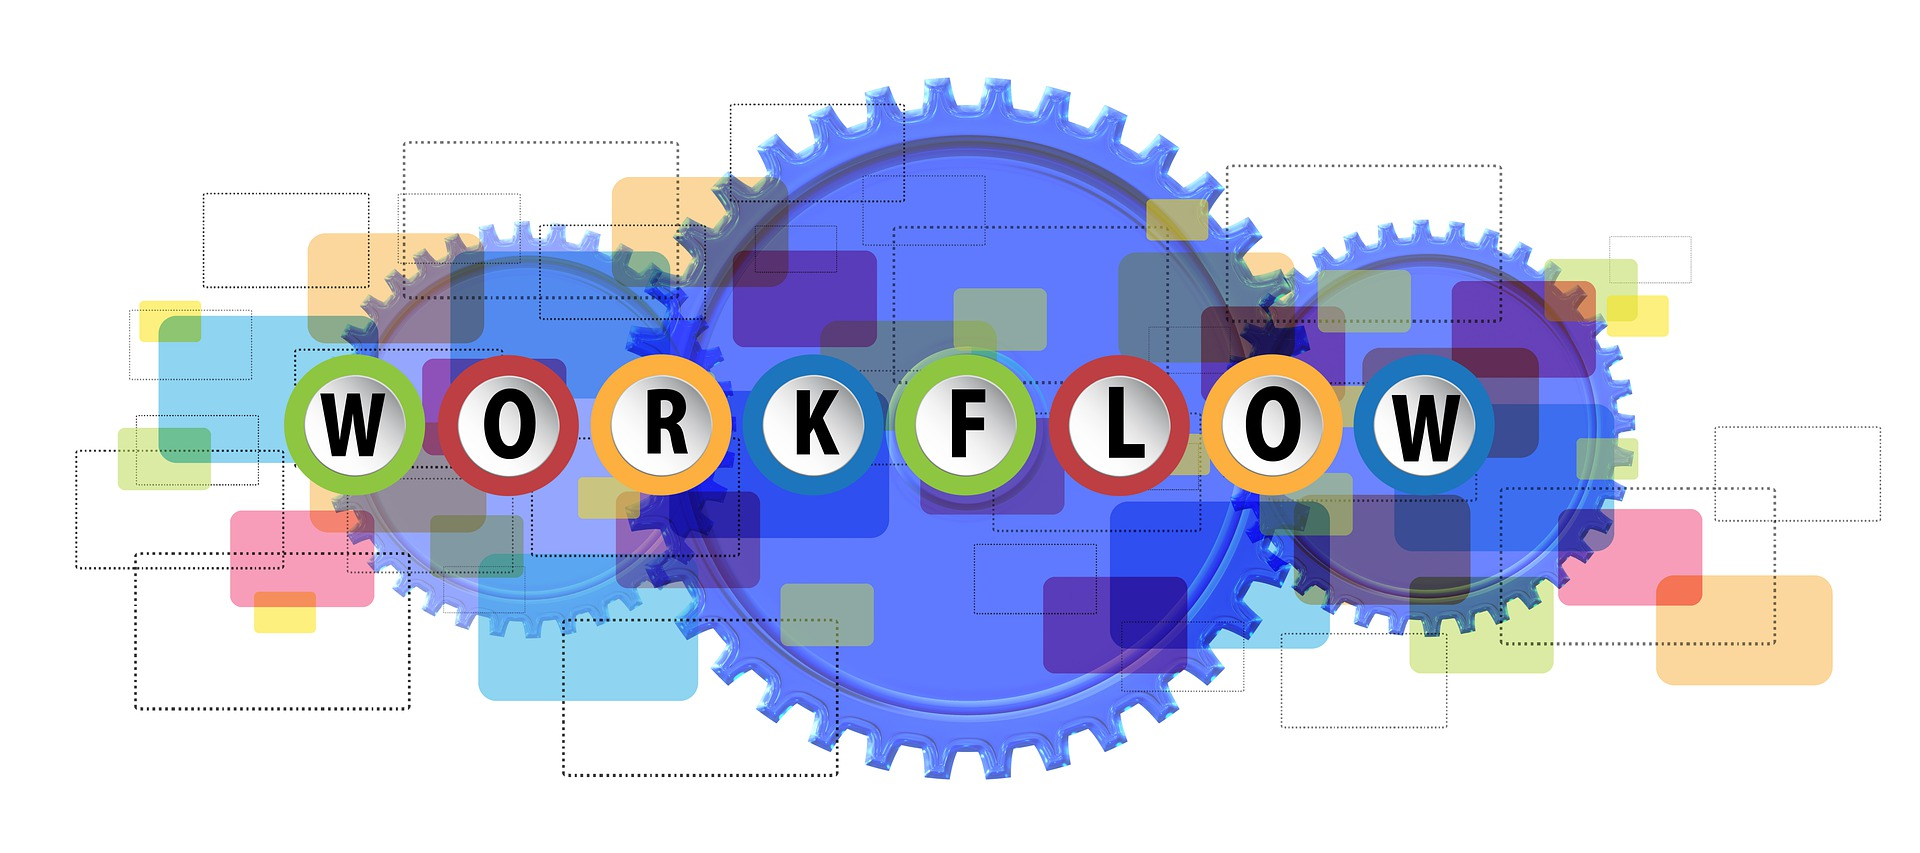 Workflow technical approach